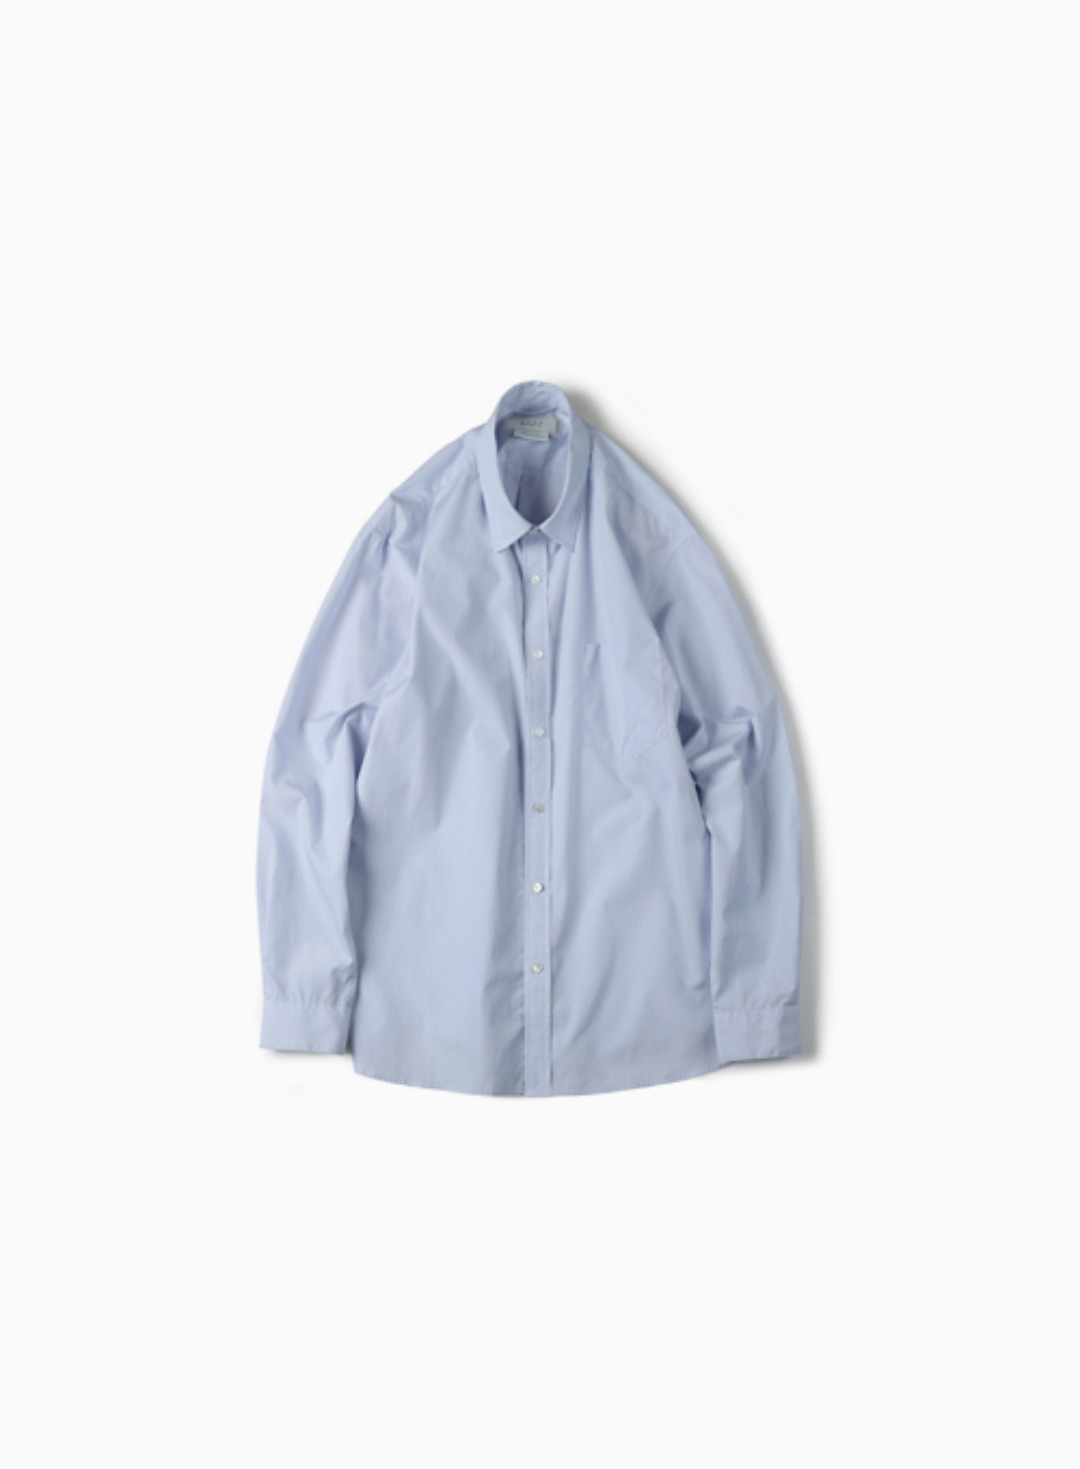 03 STANDARD SHIRT (BLUE STRIPE)